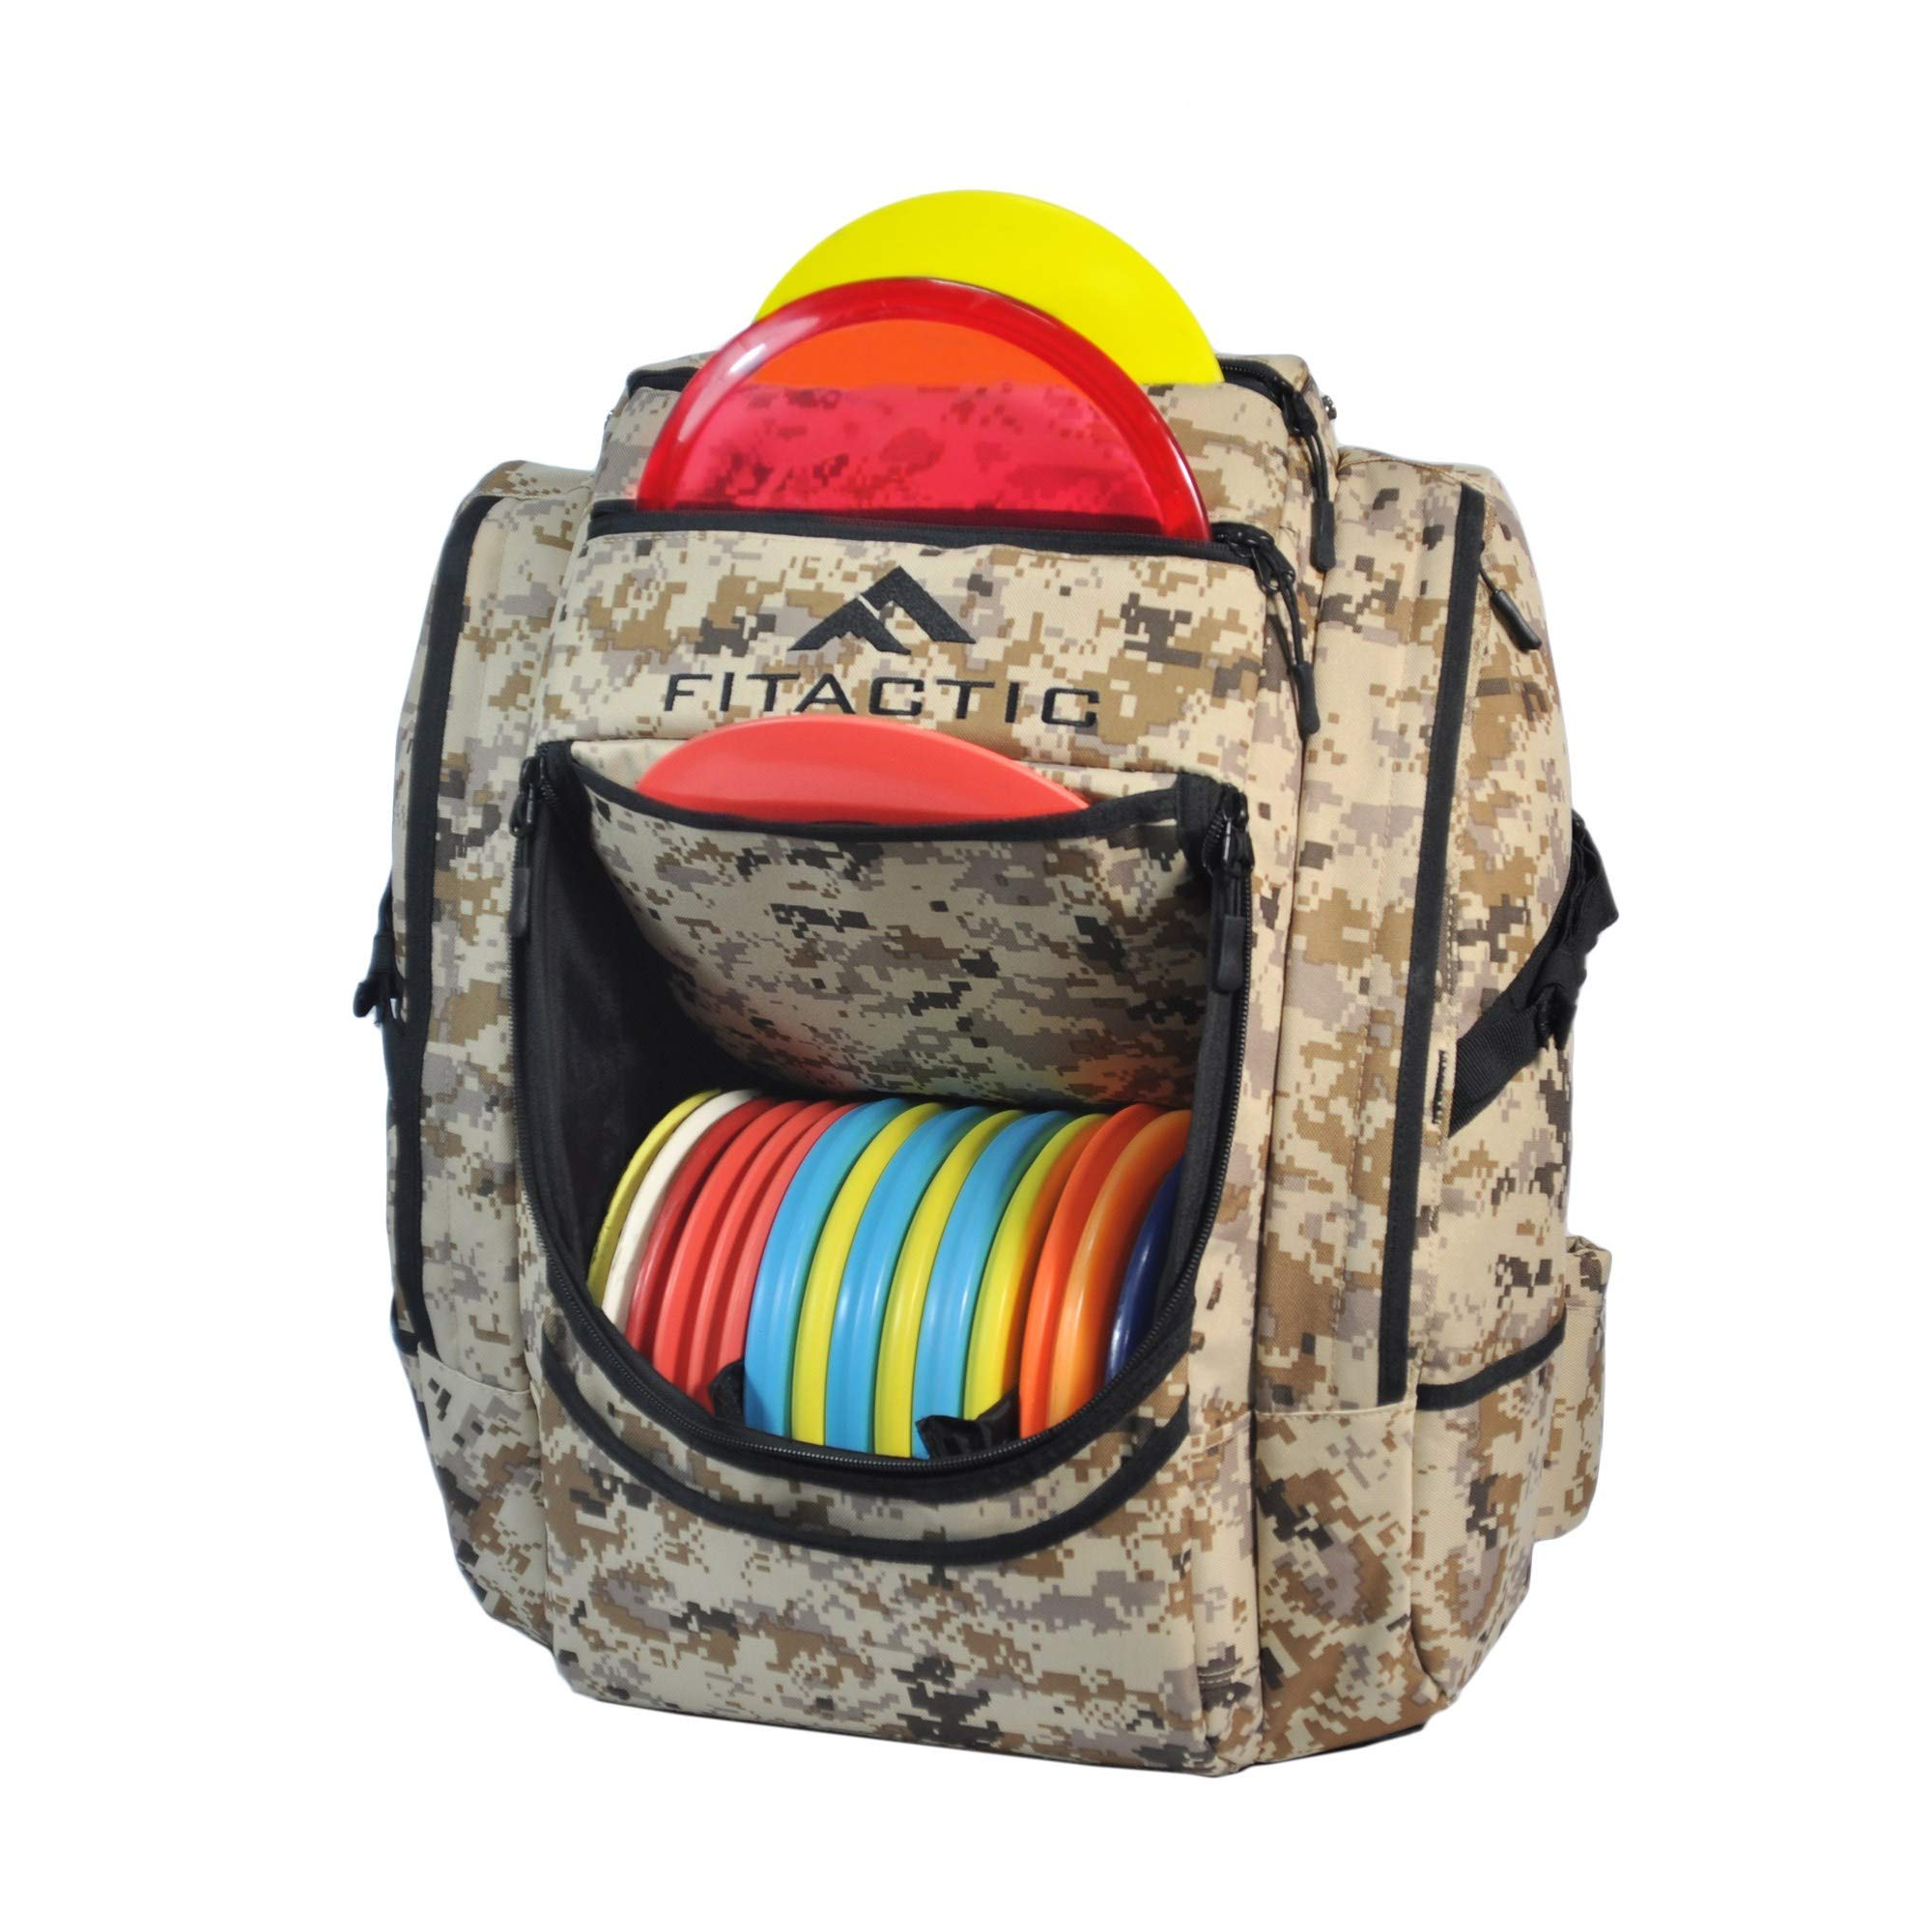 FITactic Luxury Frisbee Disc Golf Bag Backpack (Capacity: 25-30 Discs, Digital Desert Camouflage) by FITactic